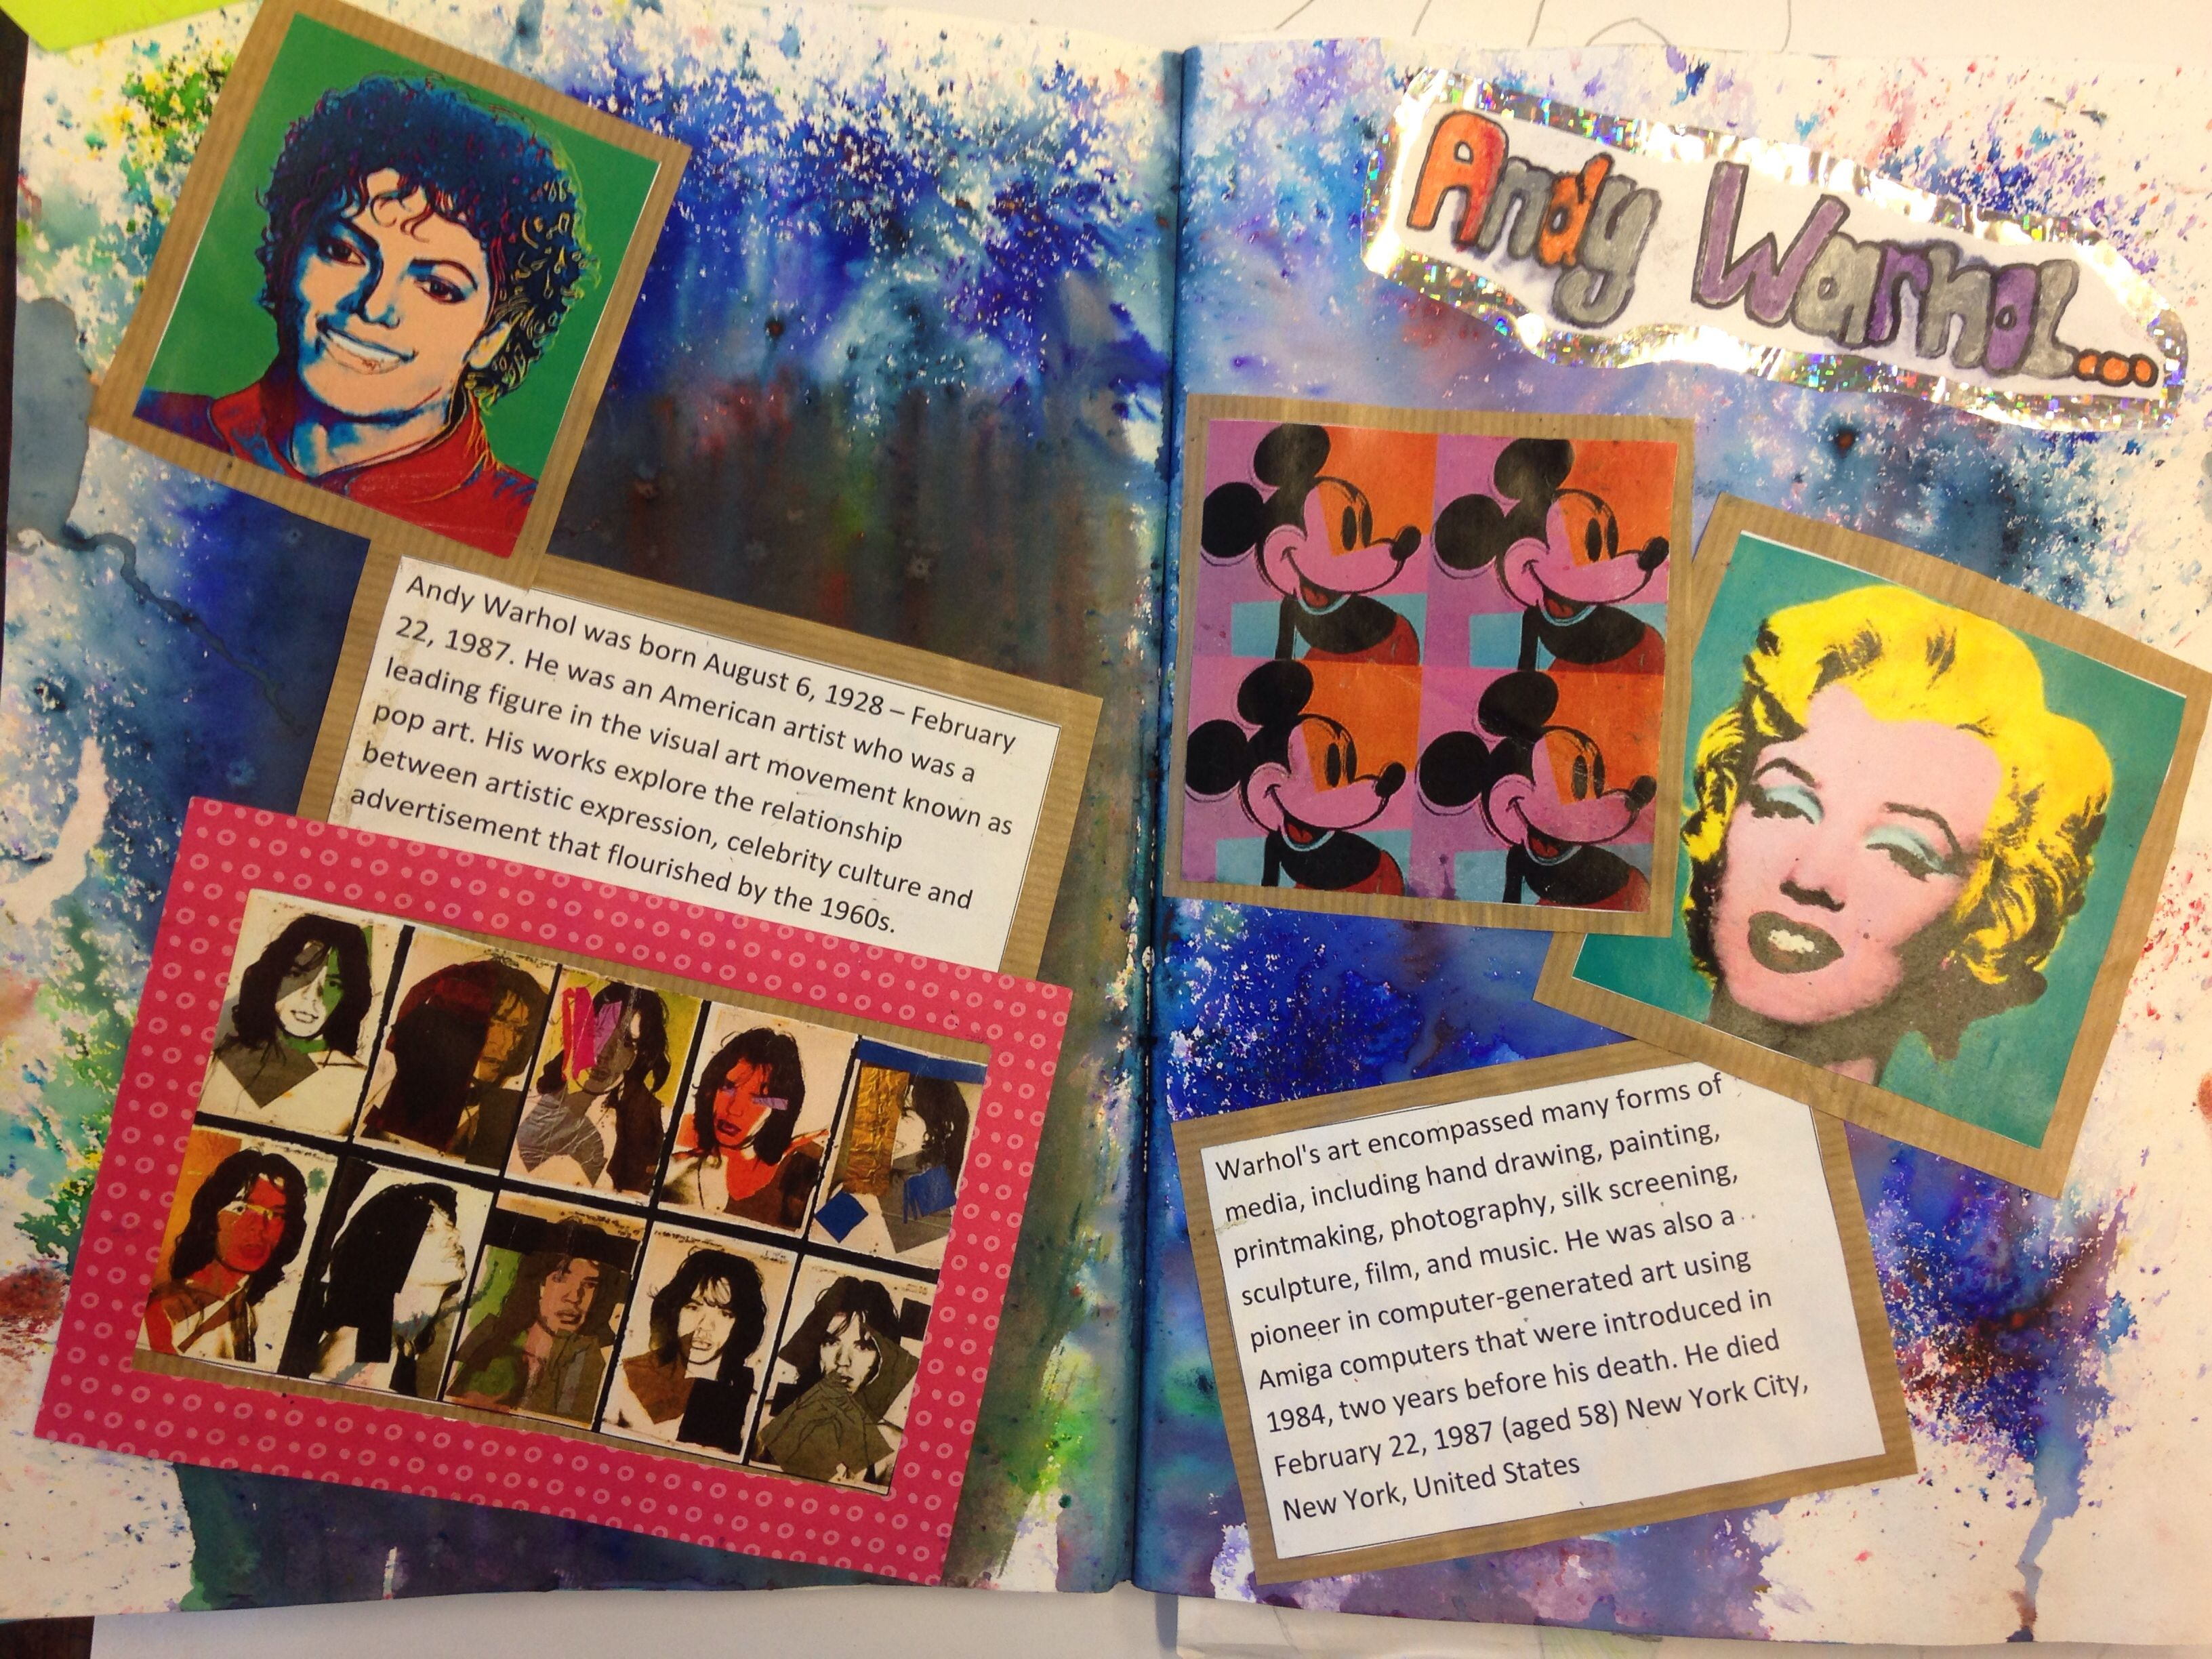 Gcse Art And Design Year 10 Popular Culture Andy Warhol